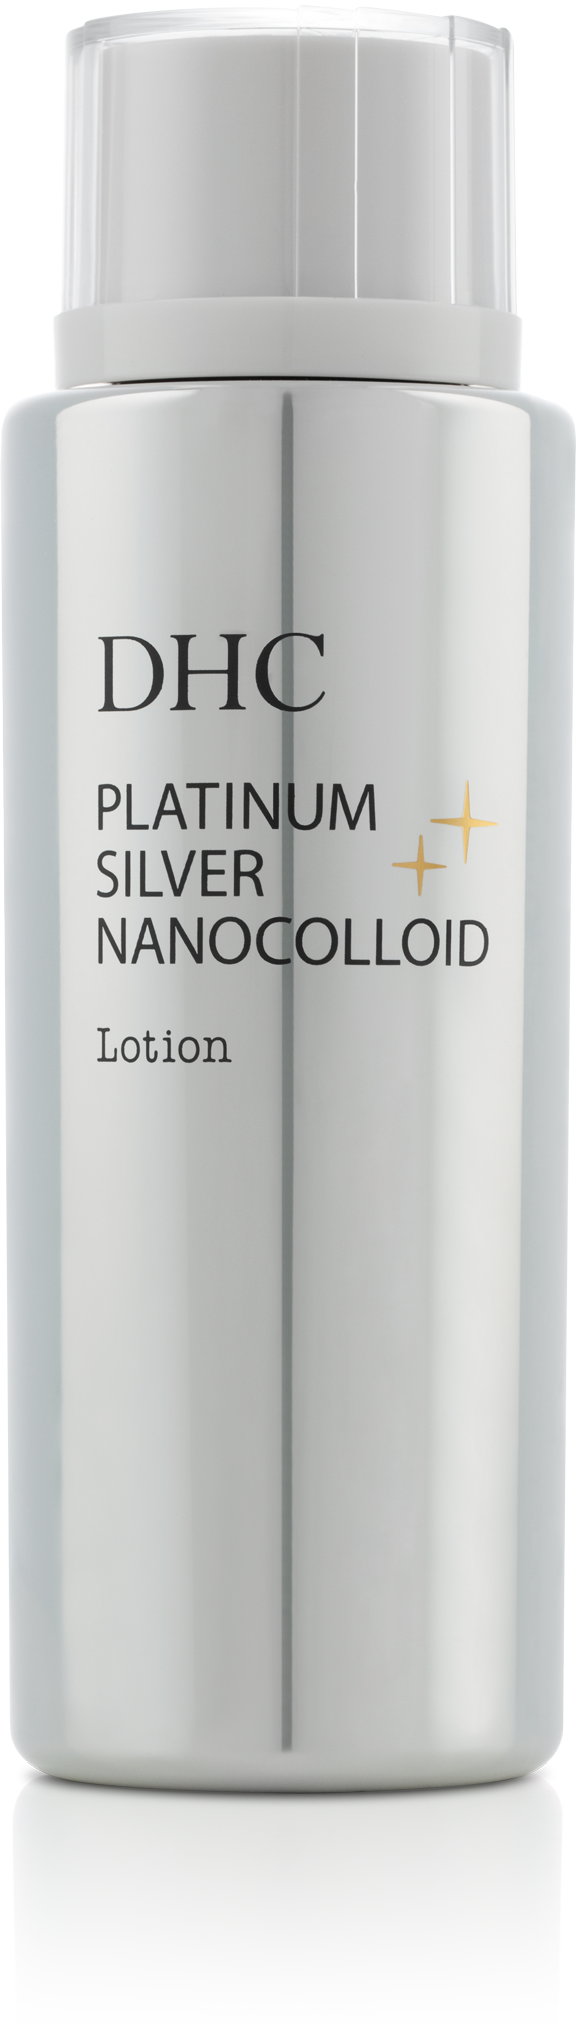 Platinum Silver Nanocolloid Lotion